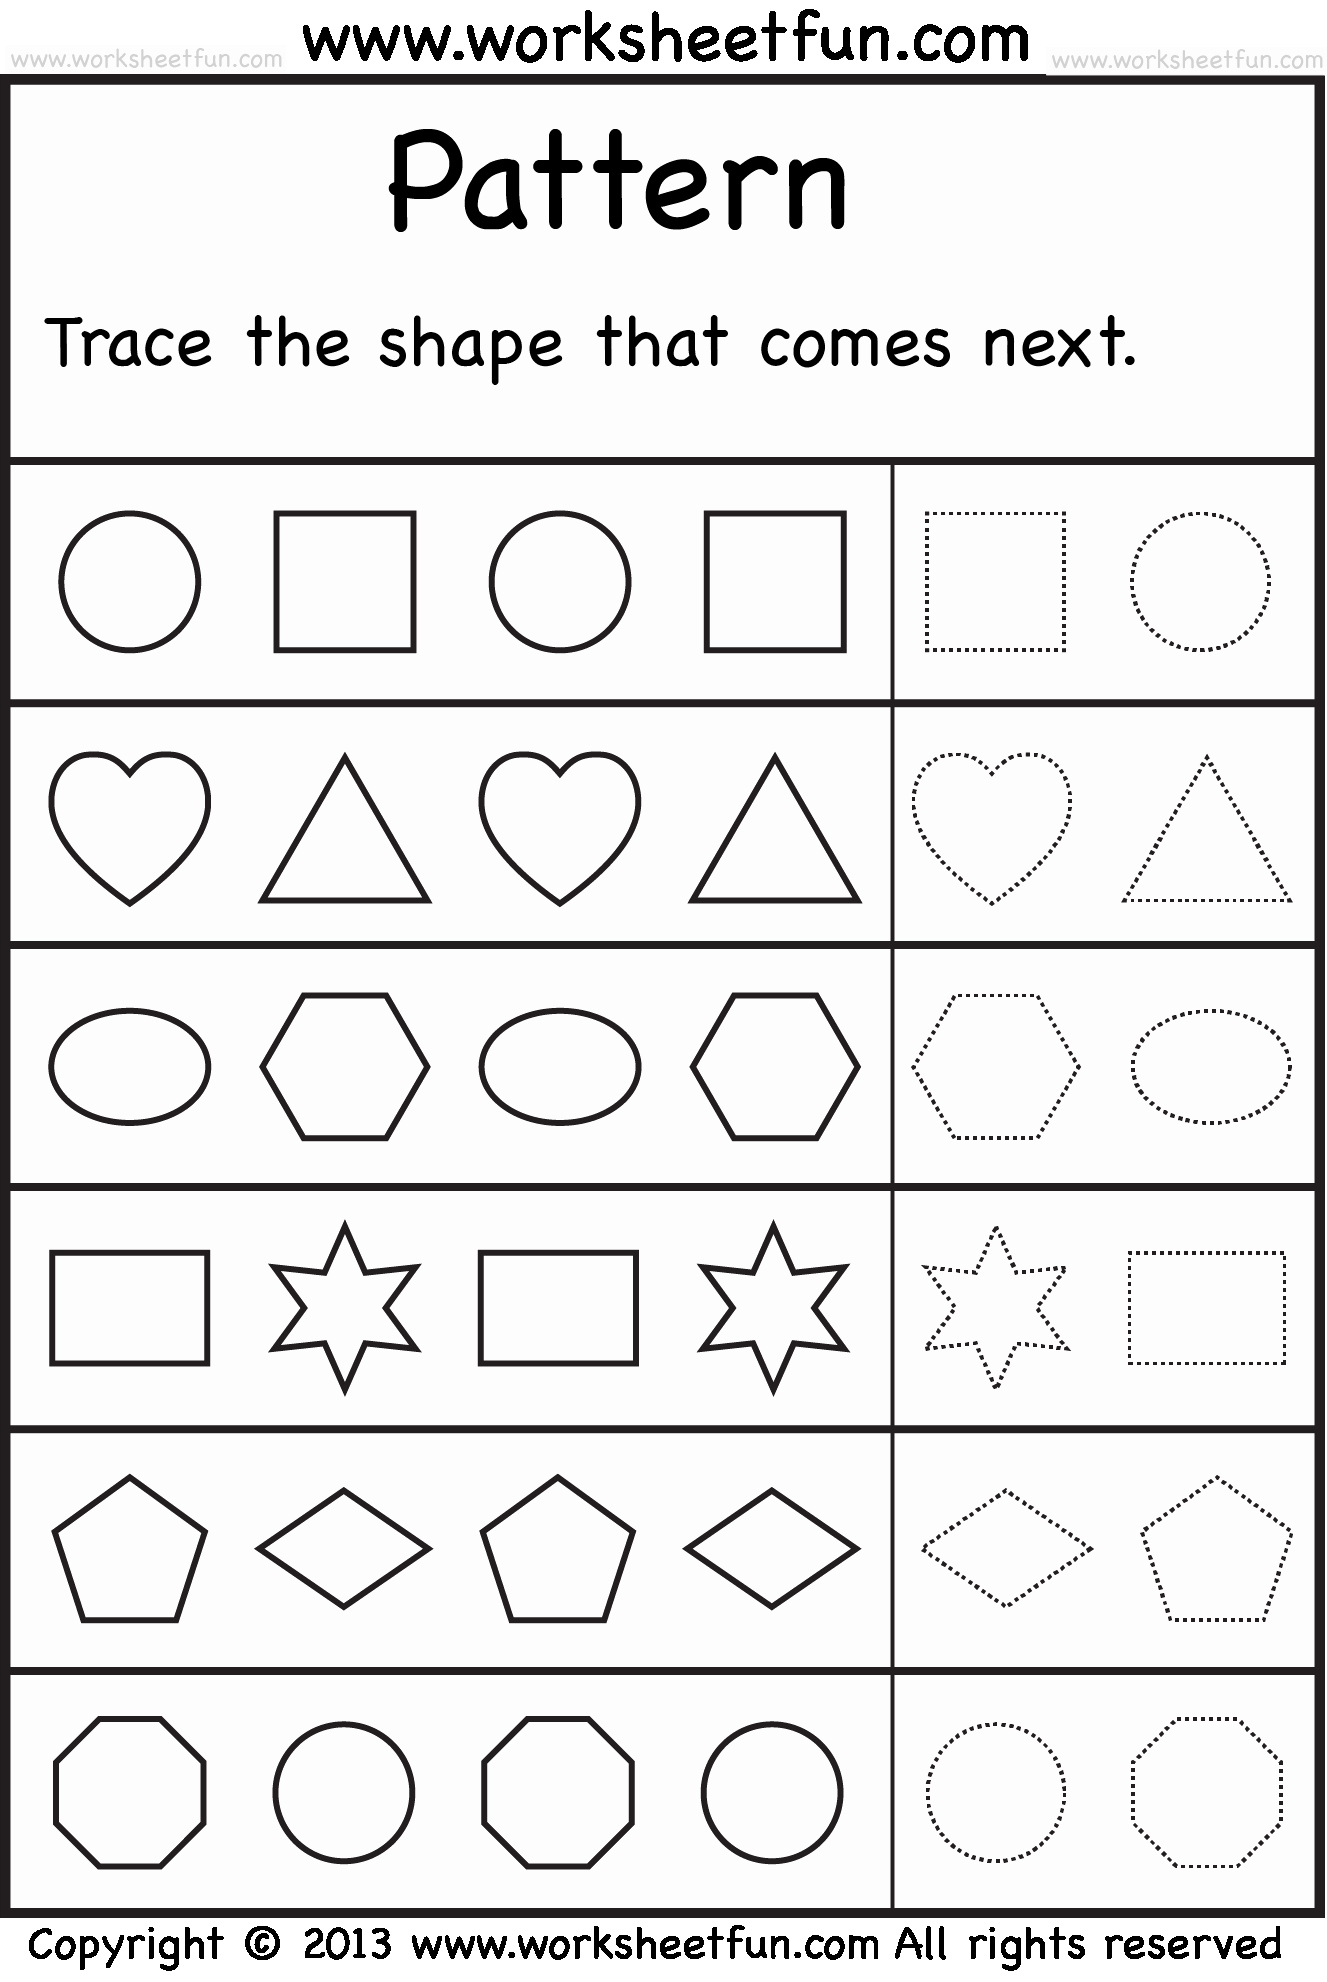 Patterns Worksheet for Kindergarten Inspirational Patterns – Trace the Shape that Es Next – 2 Worksheets